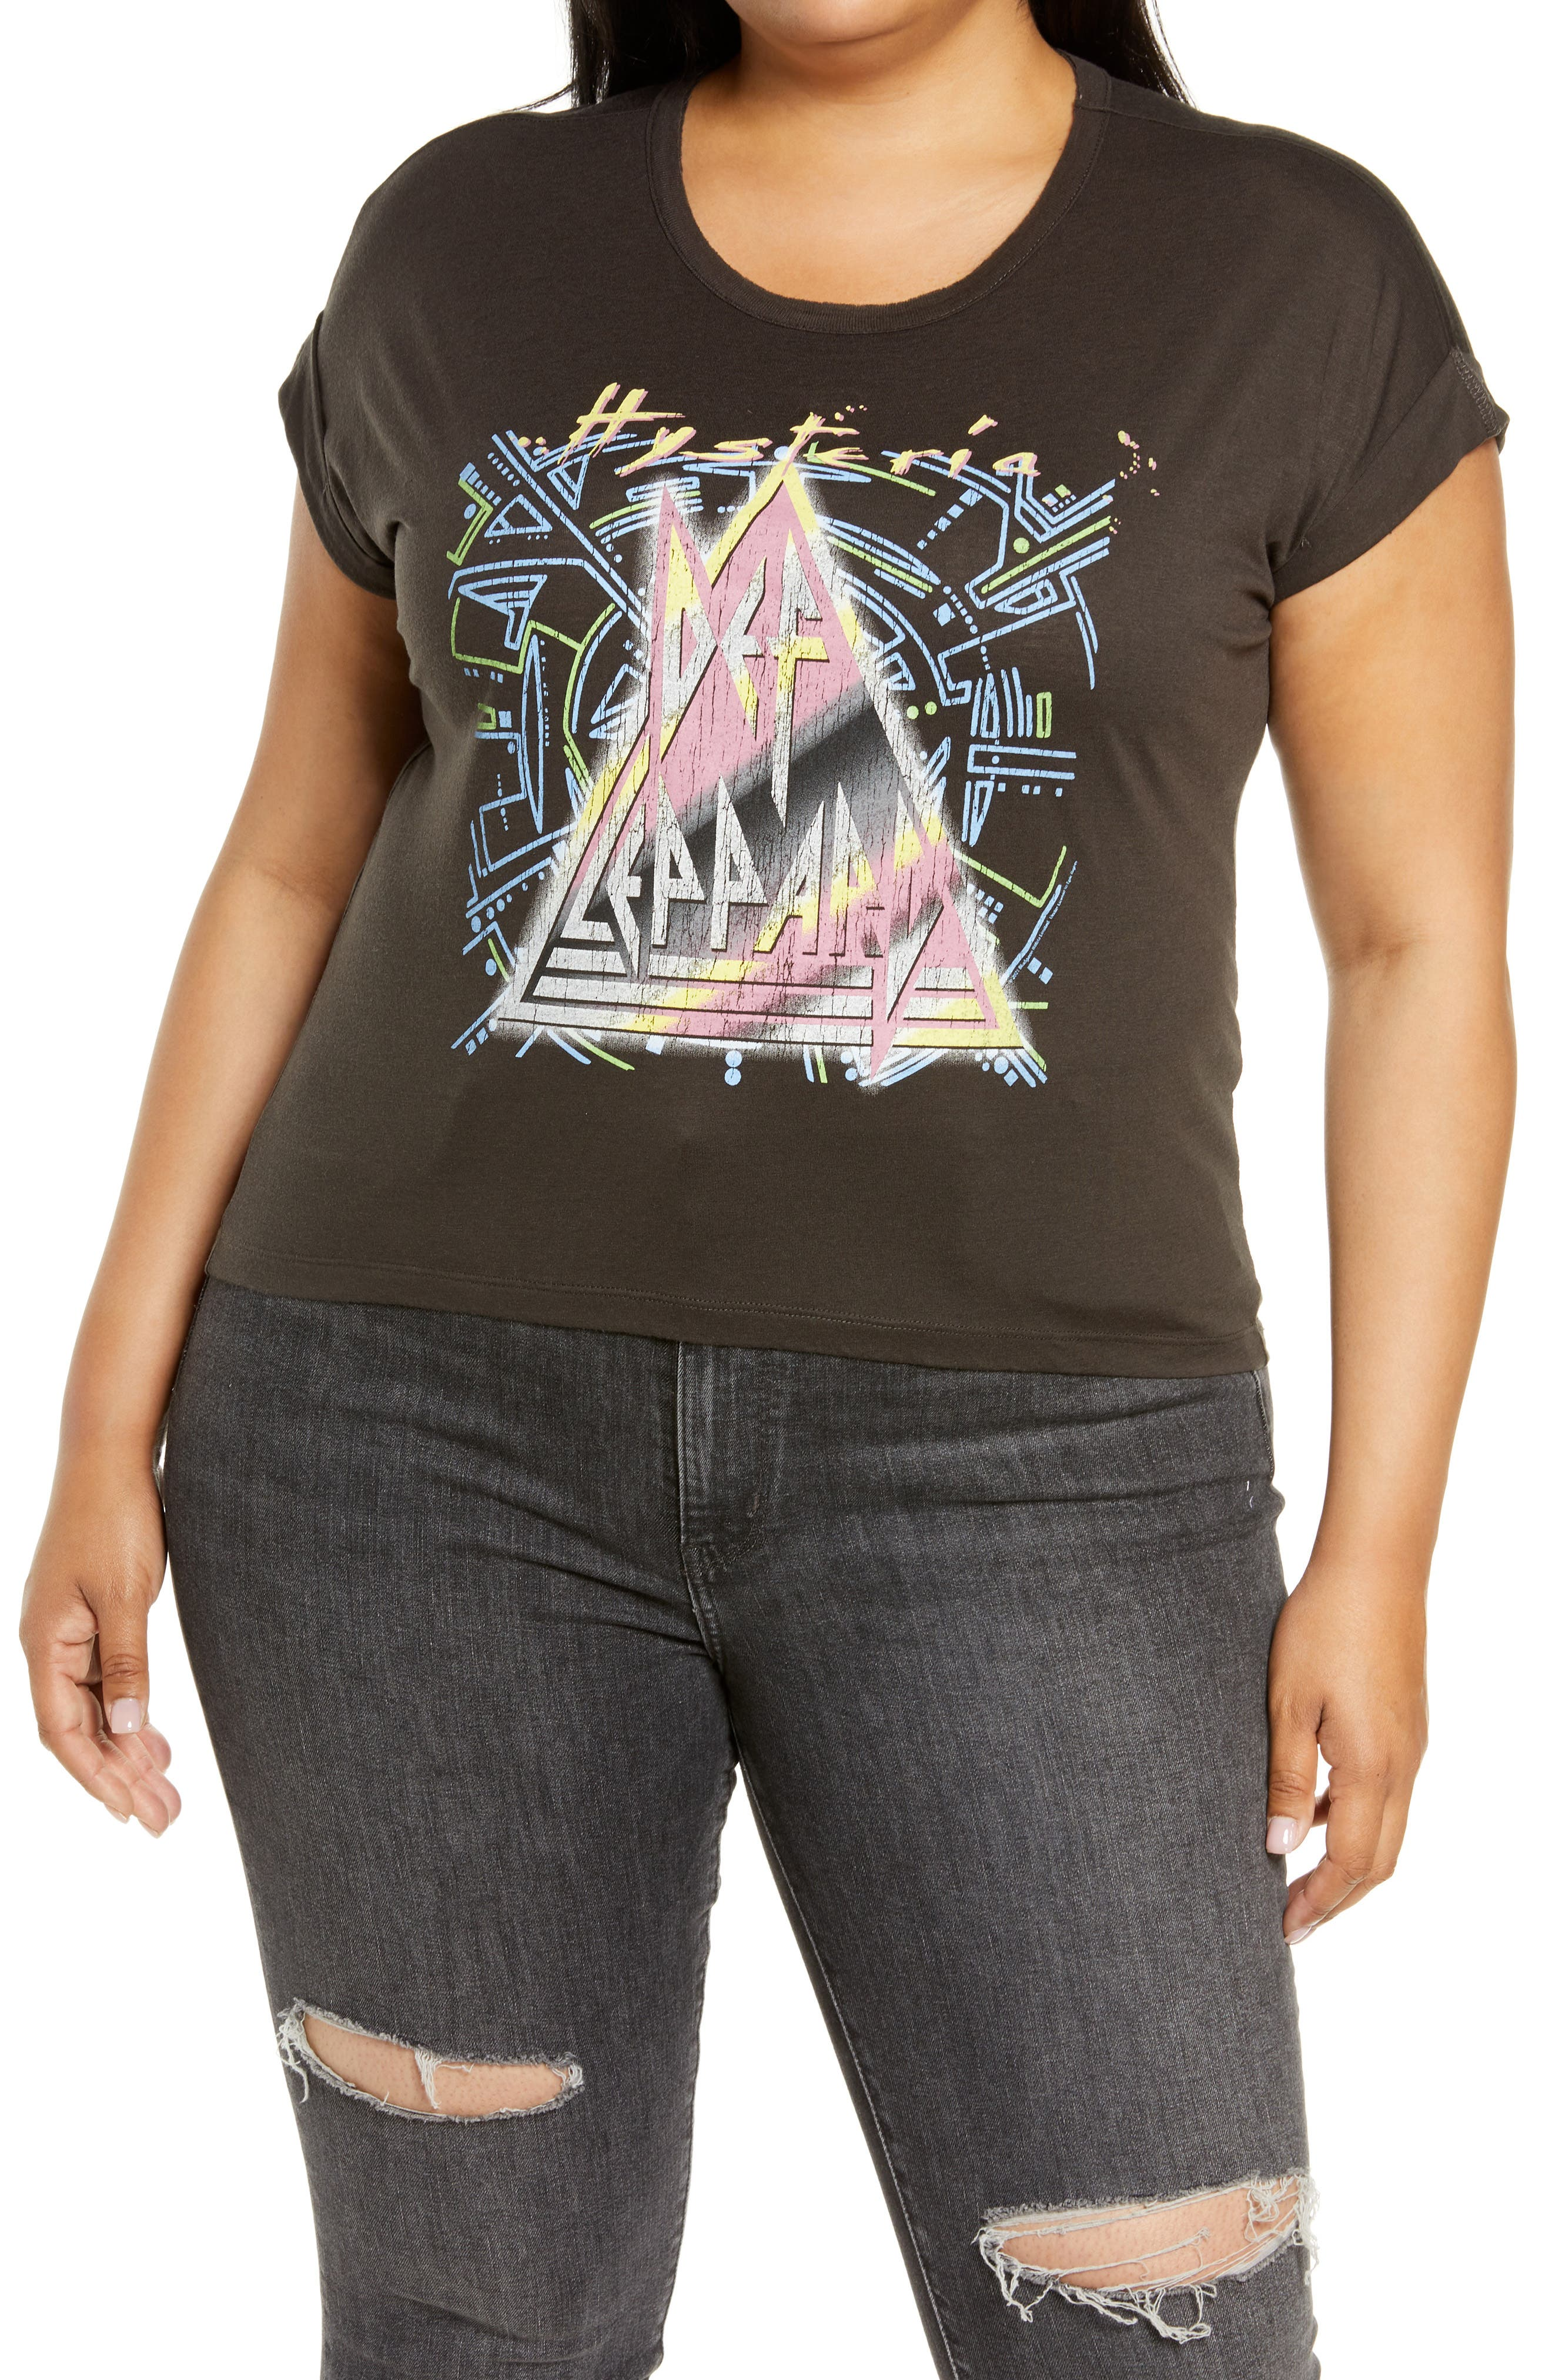 Def Leppard Tour Graphic Tee